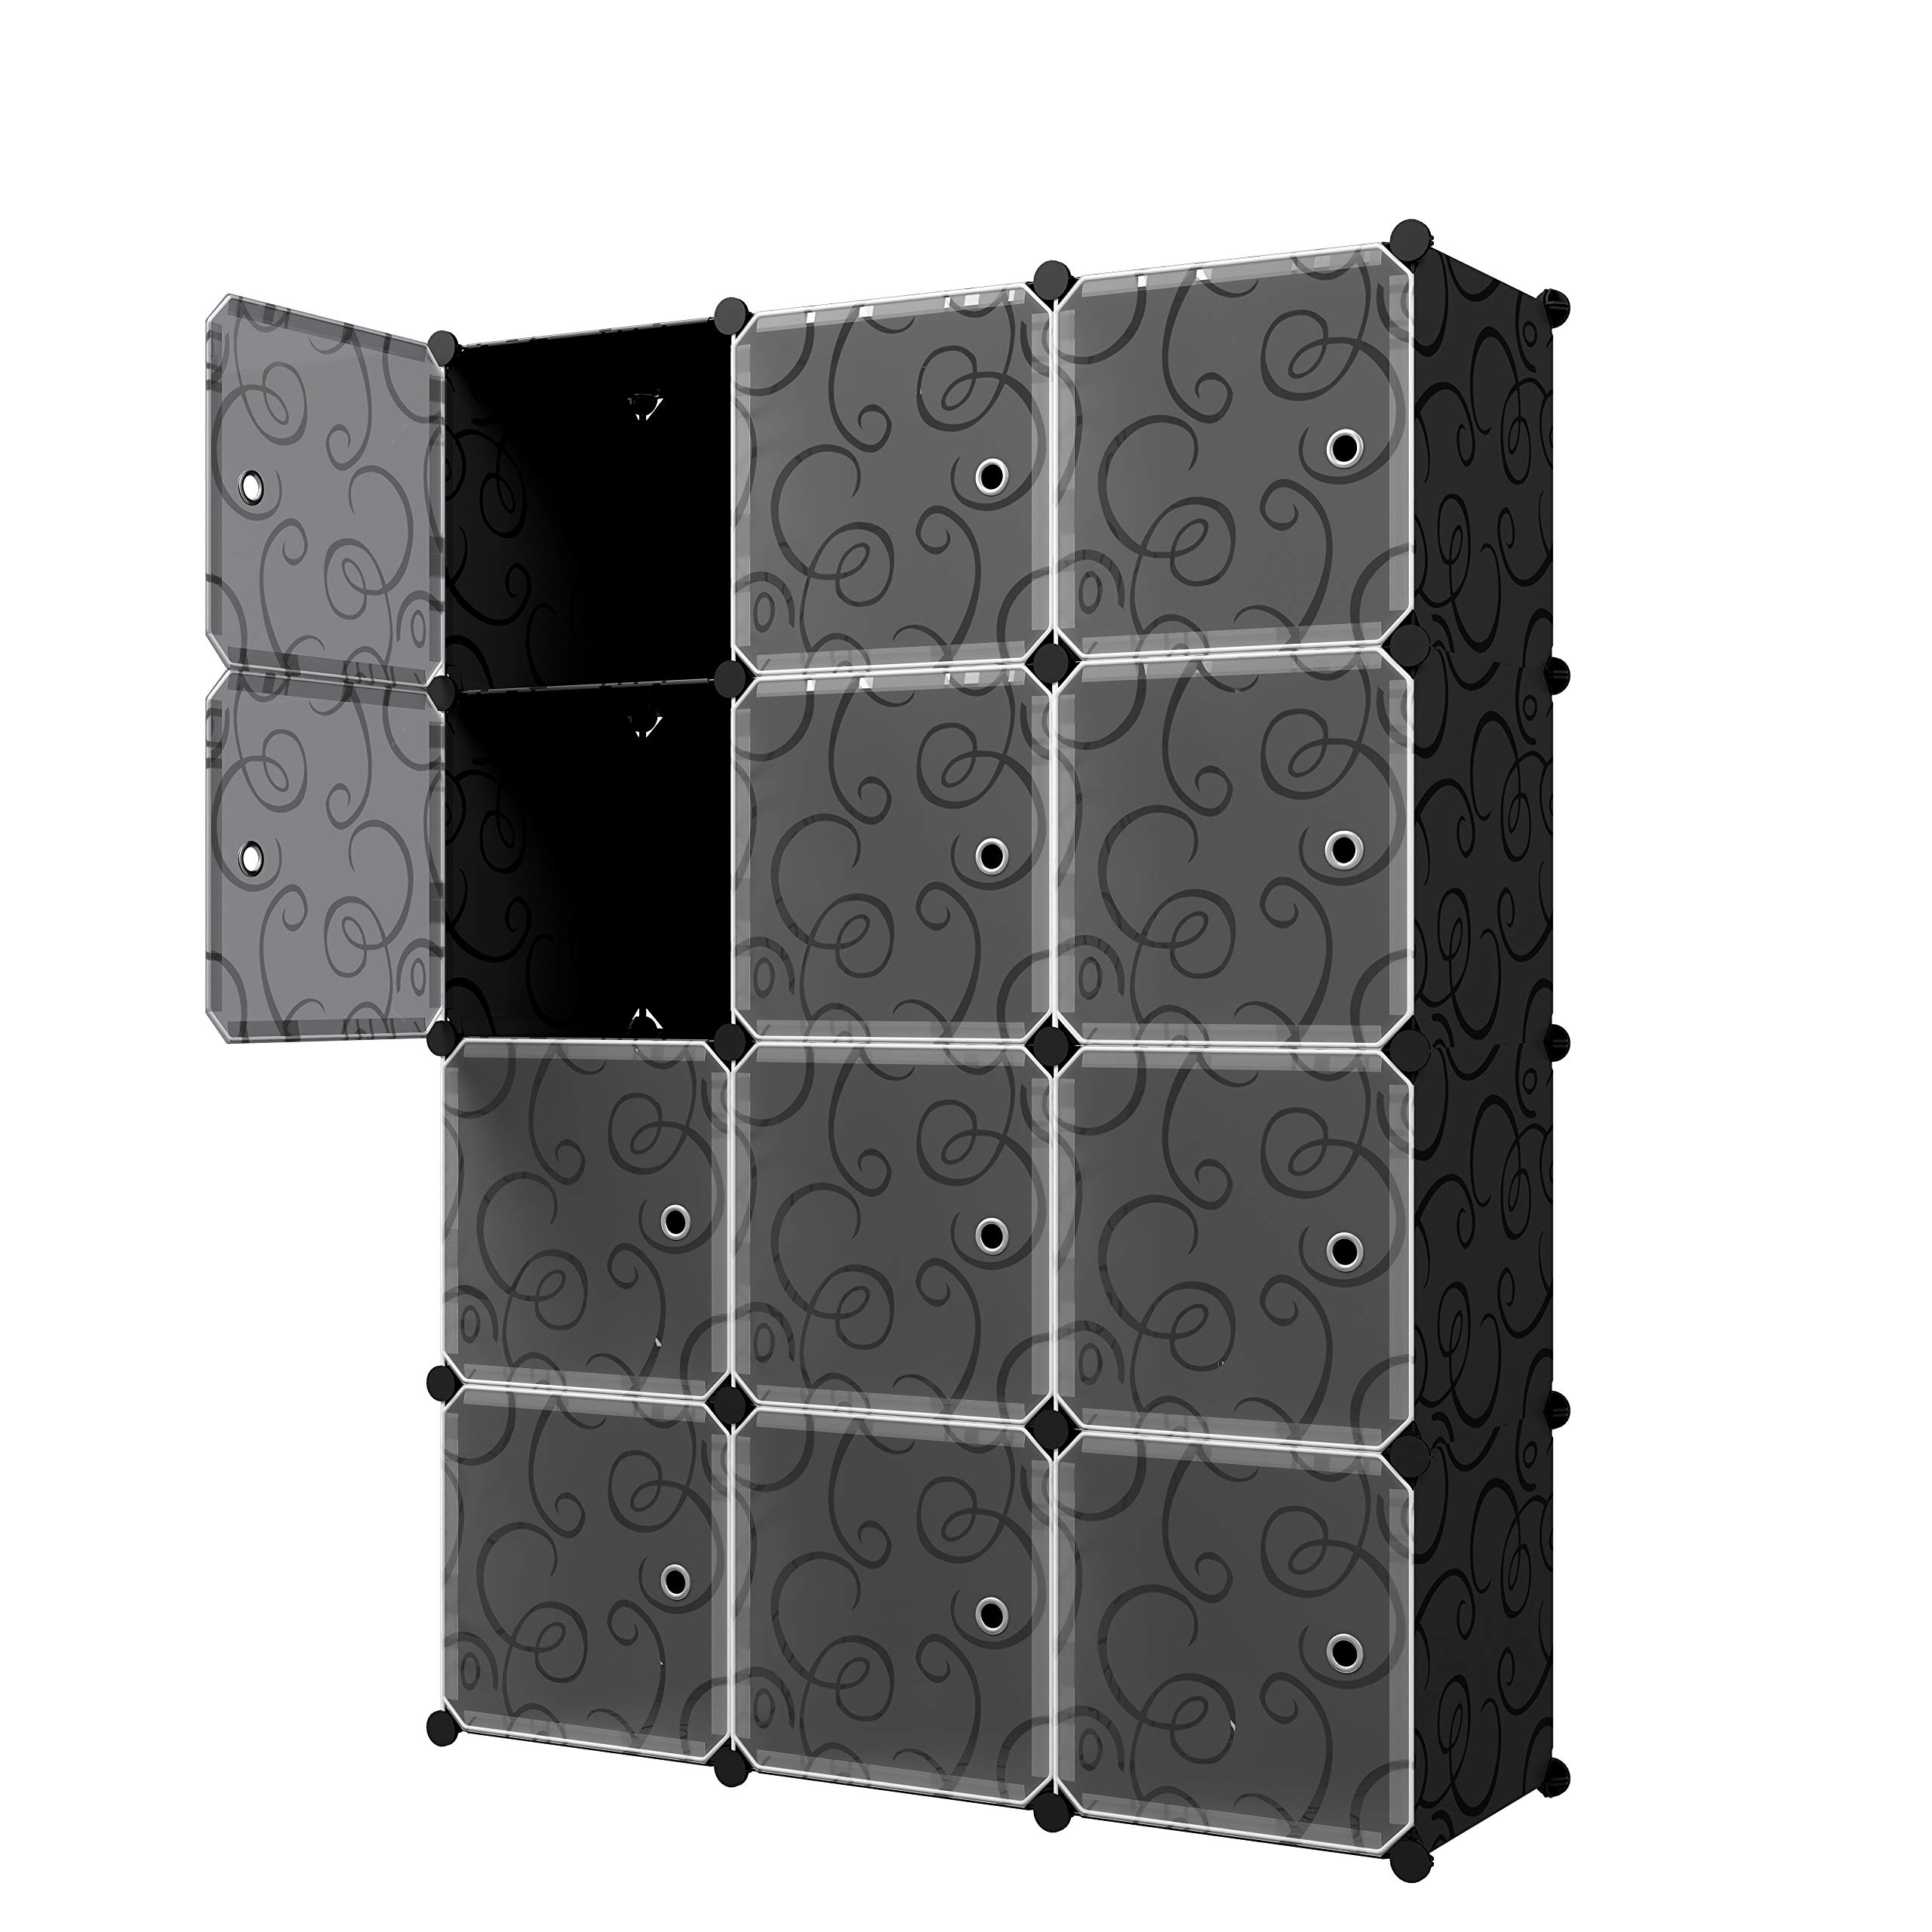 KOUSI Portable Storage Cubbies Storage Shelves Storage Organizer Shelf for Clothes Portable Shelf Toy Organizer Cabinet Plastic Dresser Clothes Storage Storage Cubes, Black, 12 Cubes